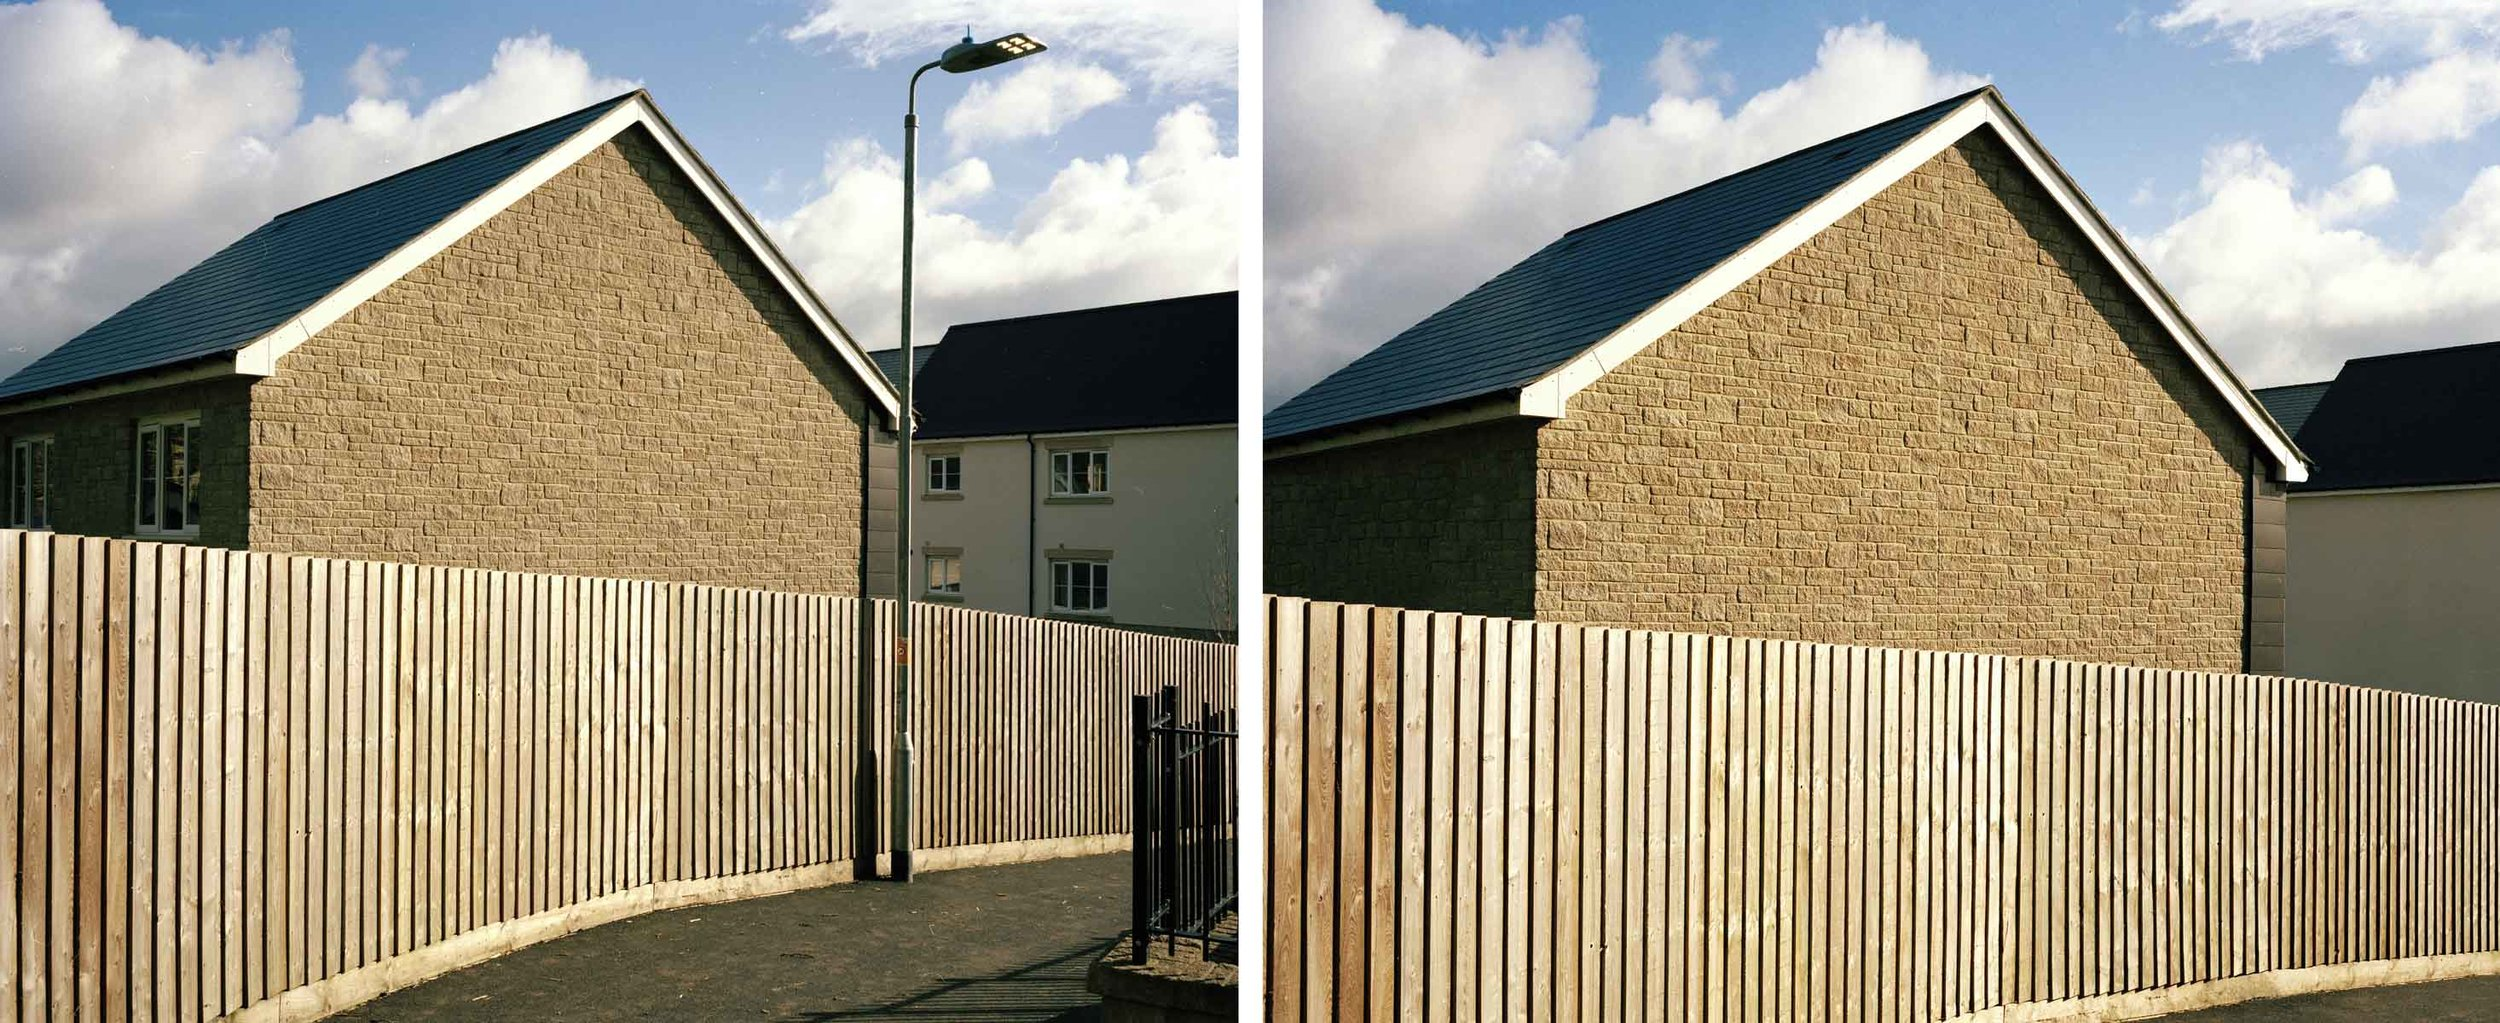 Before and after the image had been manipulated during post production.